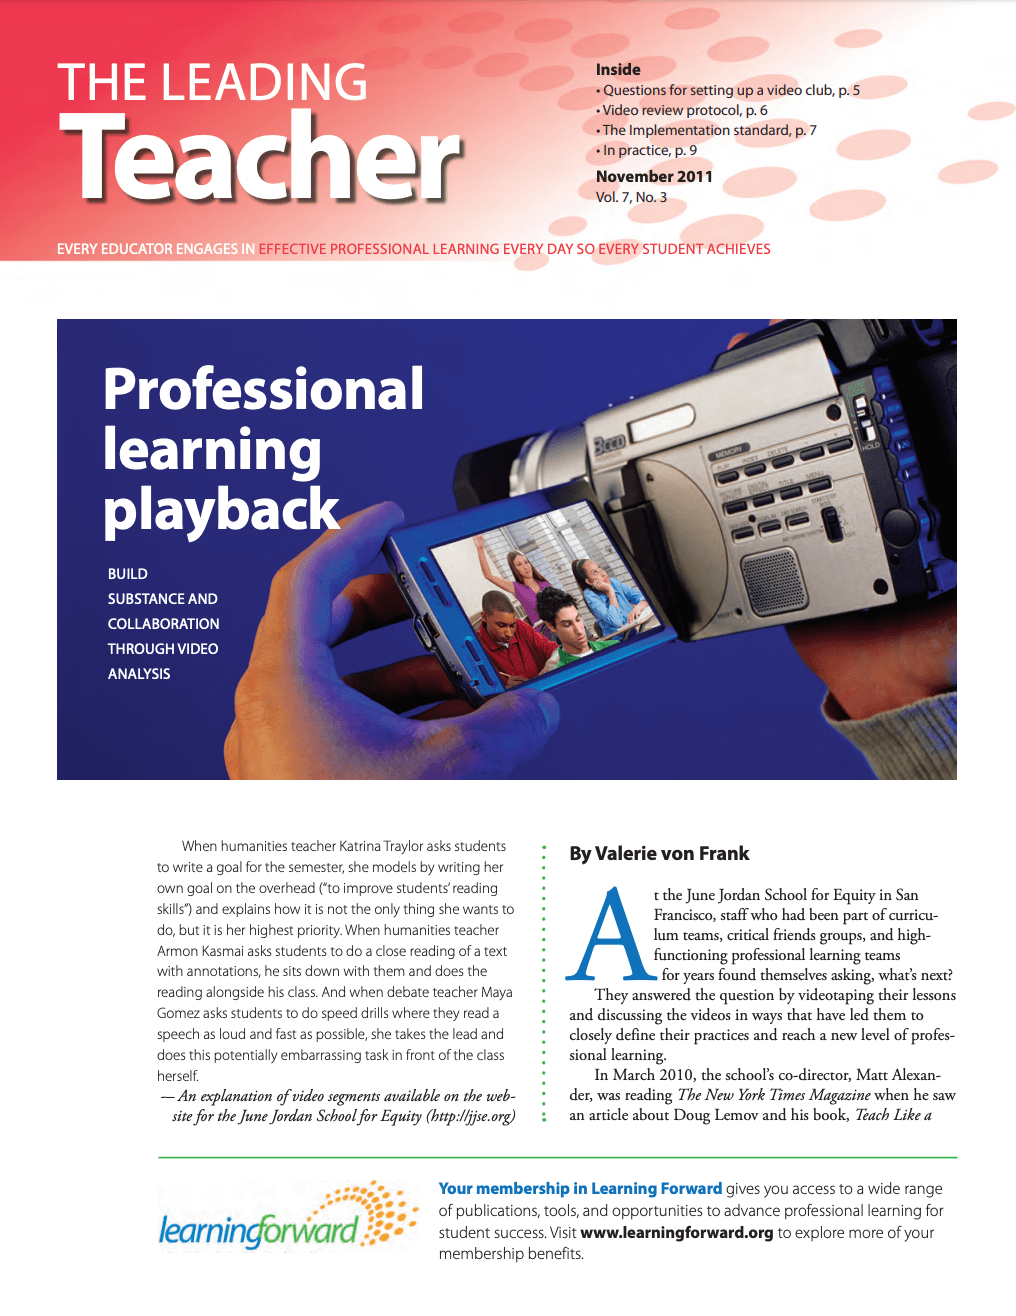 the-leading-teacher-november-2011-vol-7-no-3